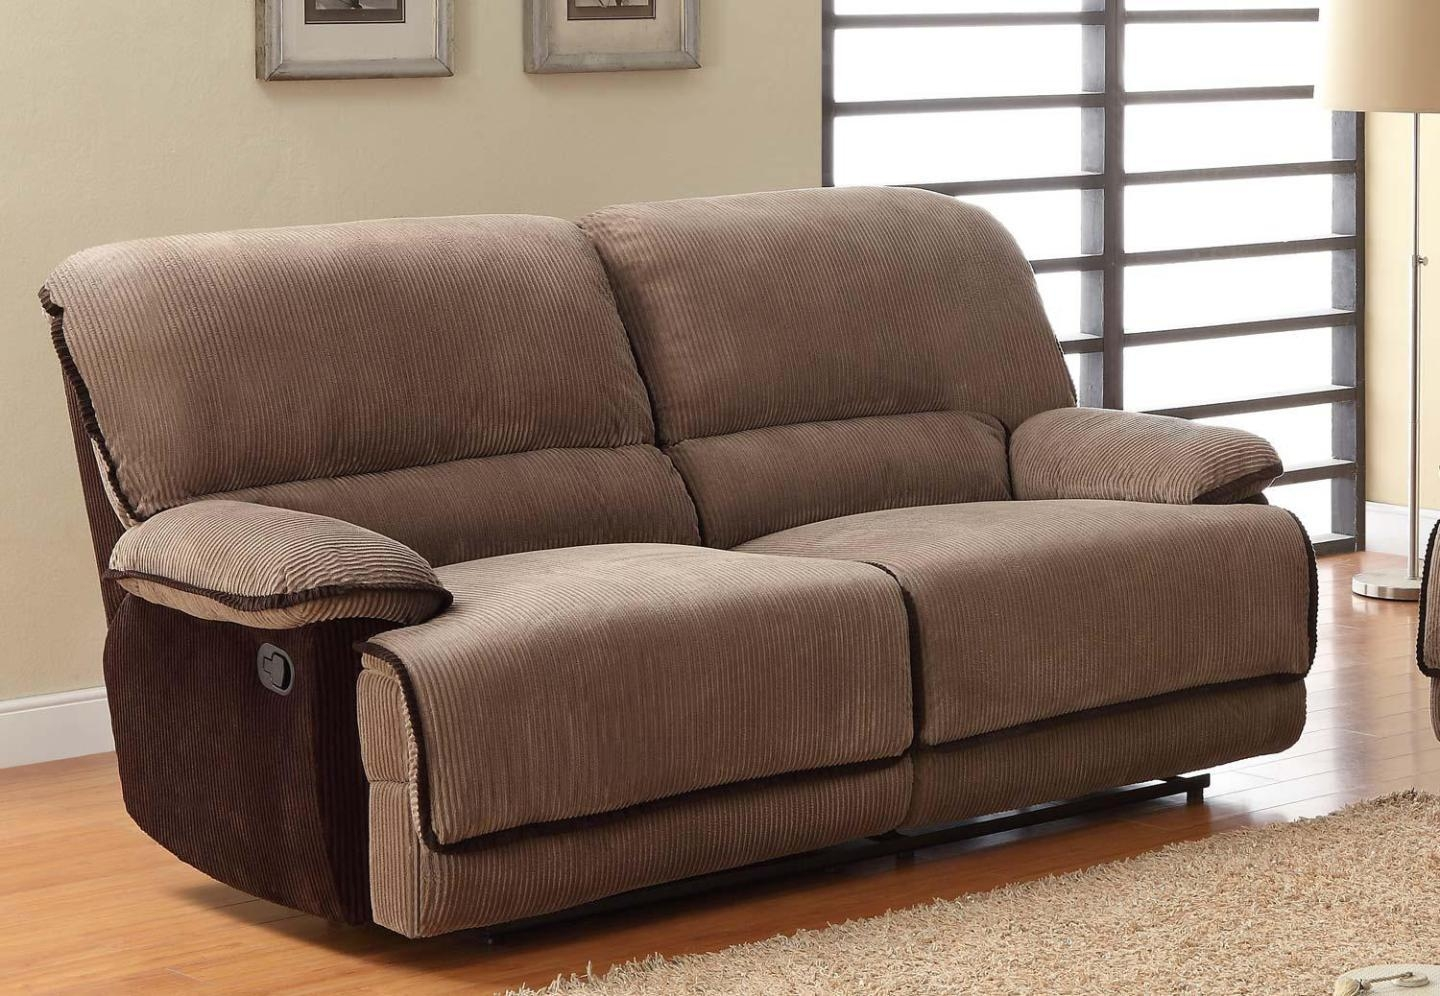 20 Top Slipcover For Reclining Sofas Sofa Ideas